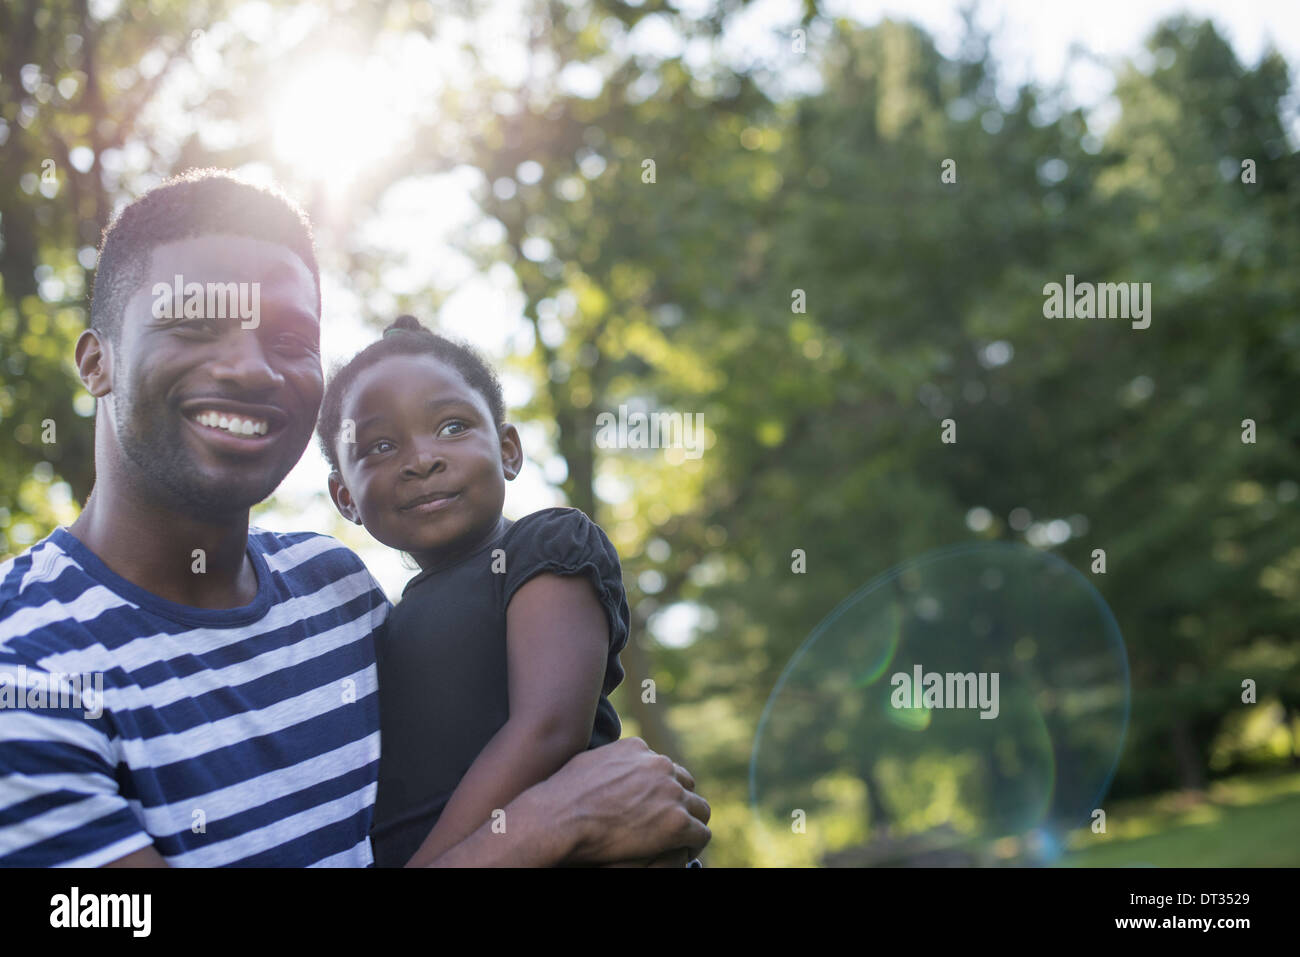 A man holding a small child in his arms in the shade of trees on a hot summer day Stock Photo